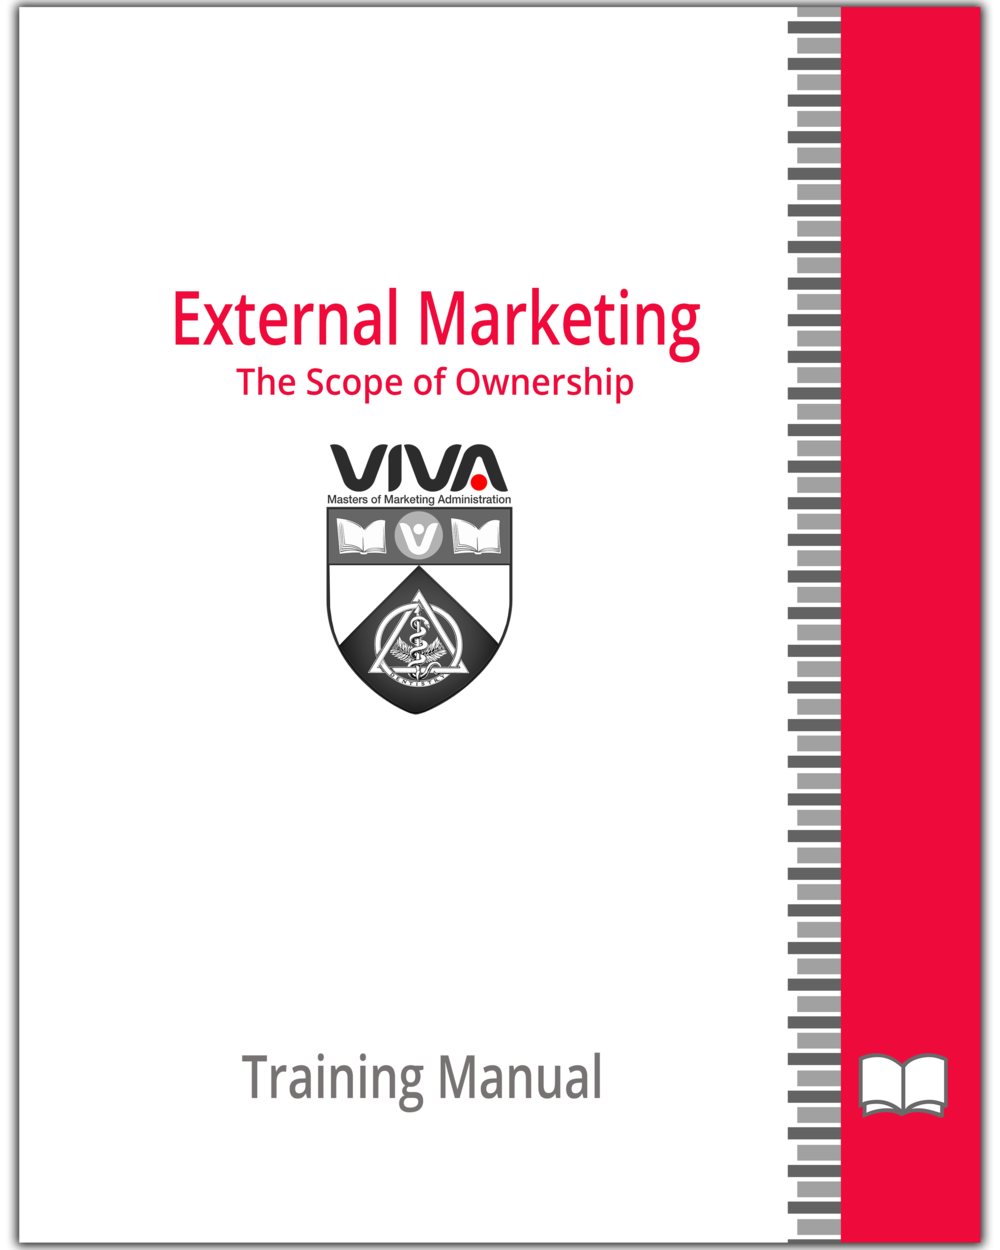 EXTERNAL MARKETING COURSE